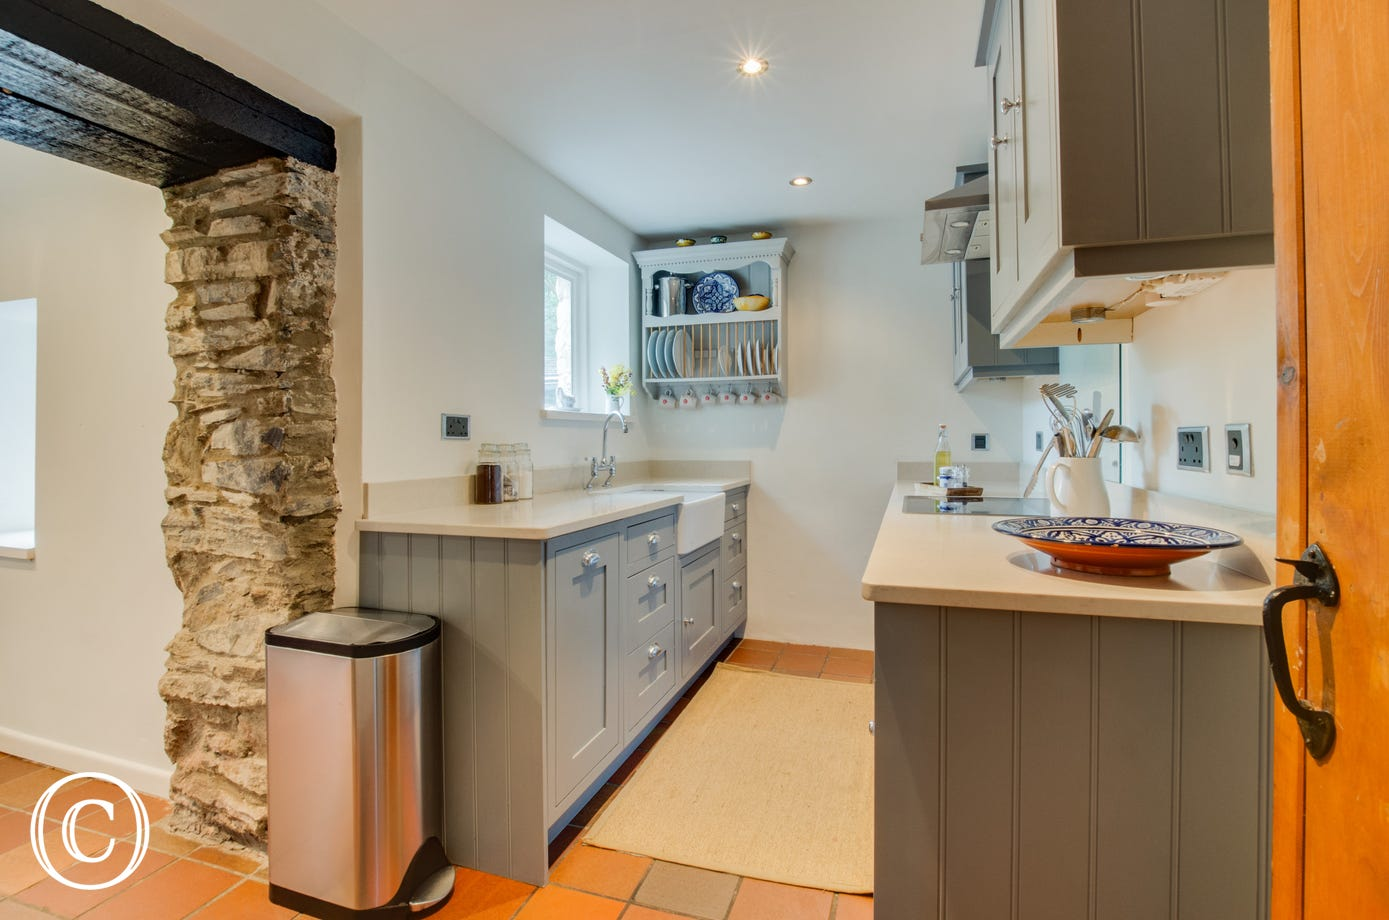 Compact kitchen with separate utility room